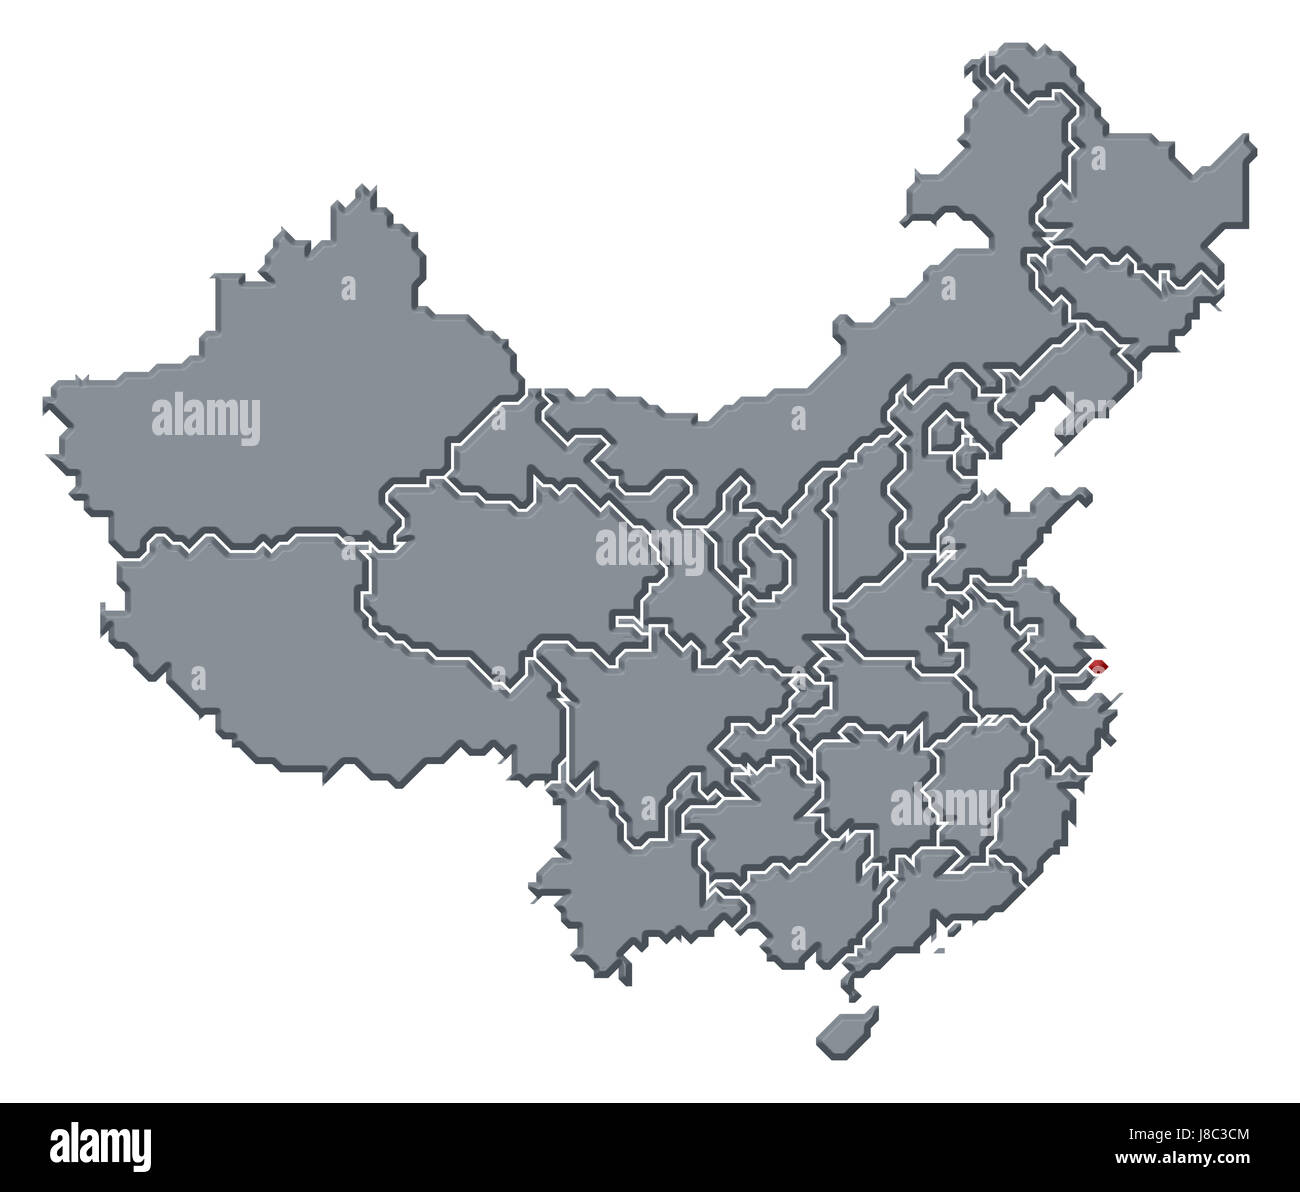 Shanghai China Map Cut Out Stock Images & Pictures - Alamy